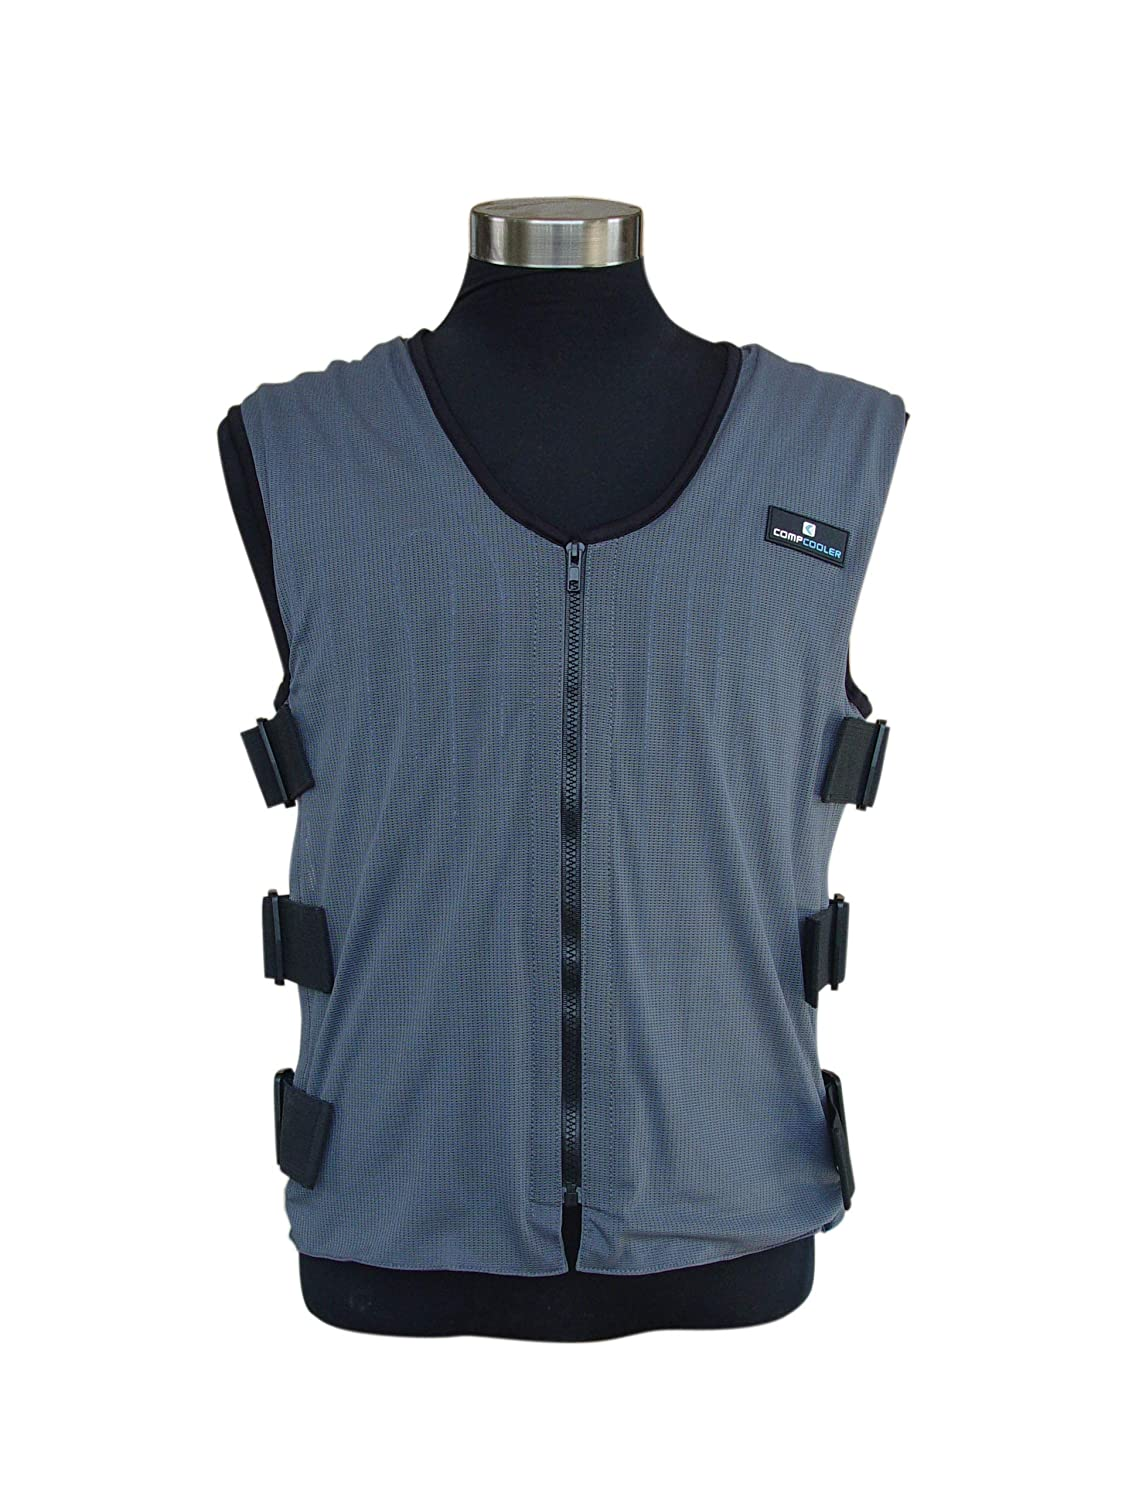 Compcooler Liquid Cooling Vest, Blue Mesh Fabric, Black Mesh Liner, Water Circulation Cooling Vest, Reversible Application